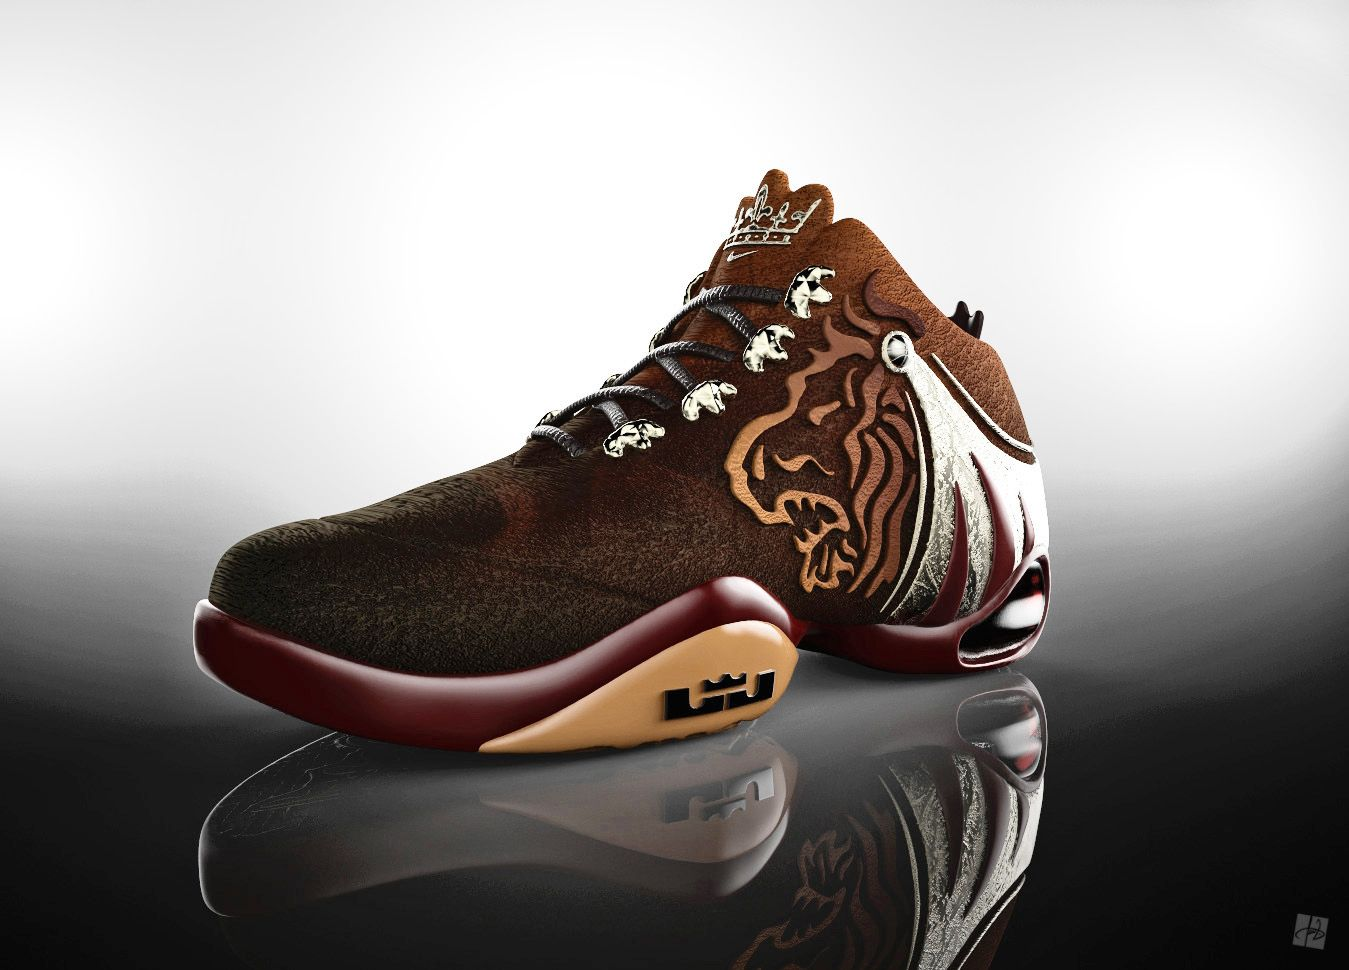 watch 203e4 66784 Nike LeBron James basketball shoe design and 3D visualization For more  images with different view visit